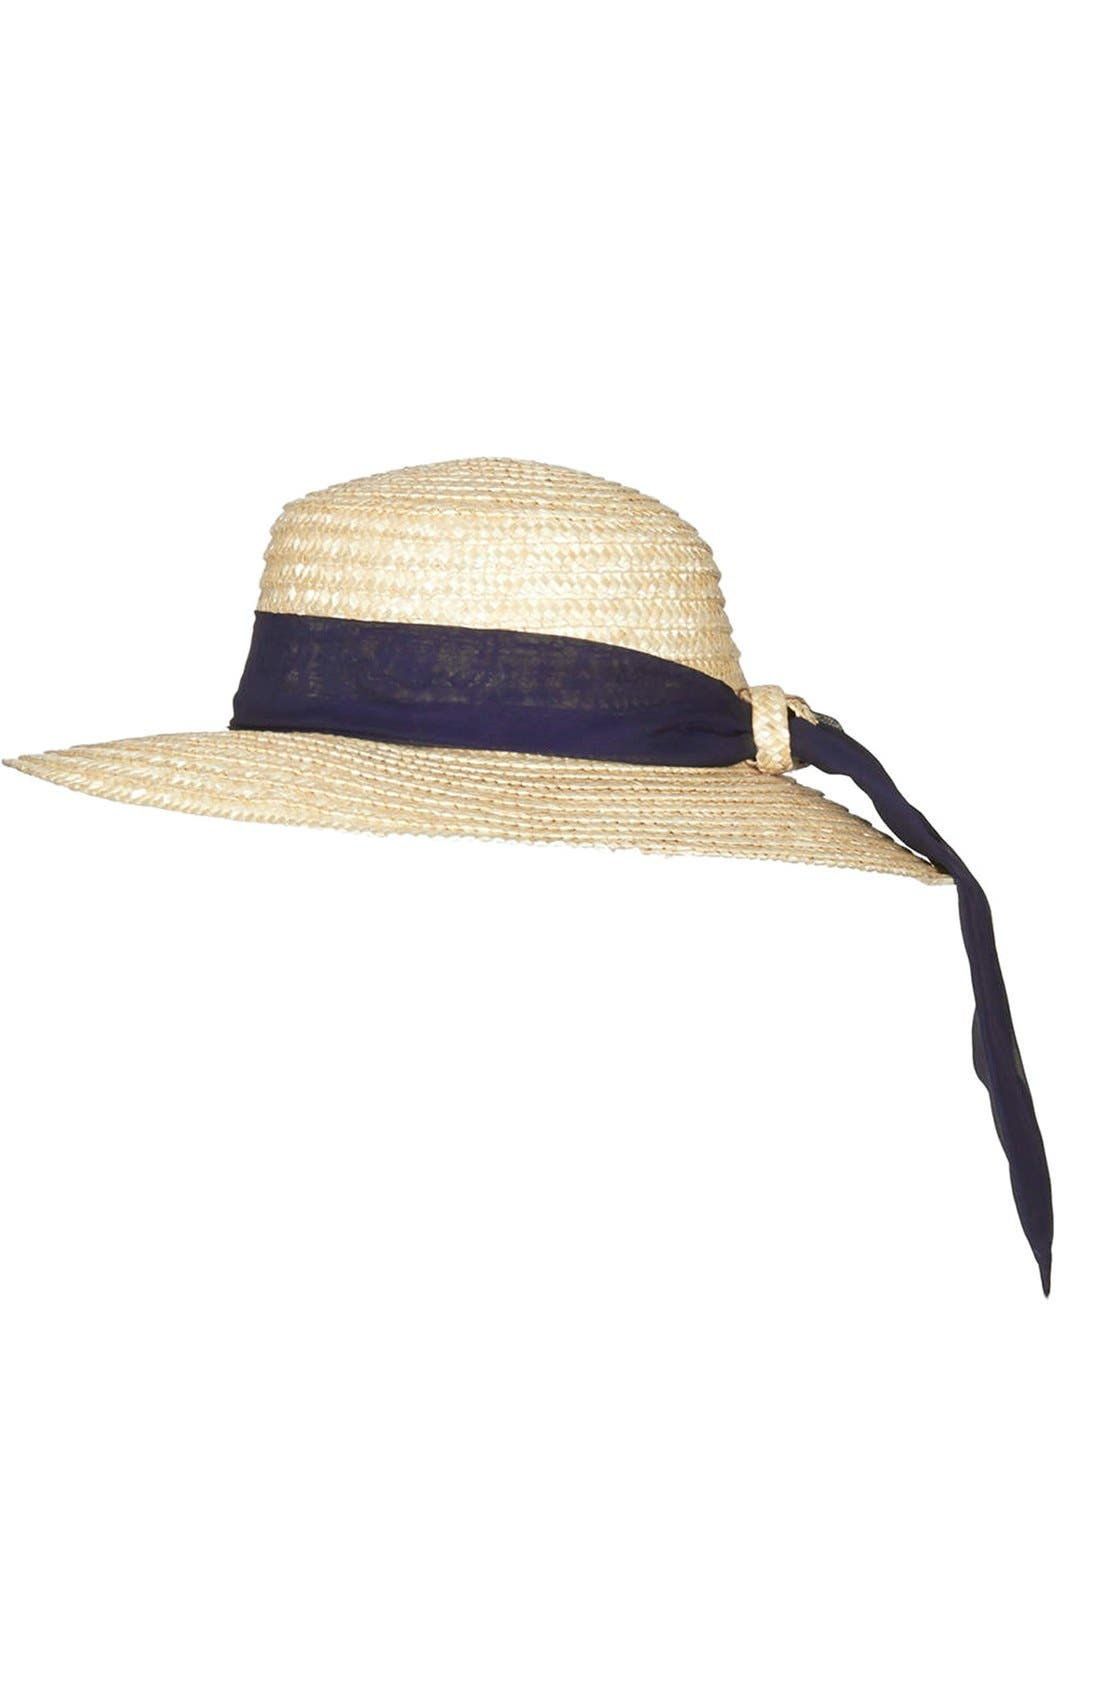 Alternate Image 1 Selected - Topshop Straw Boater Hat